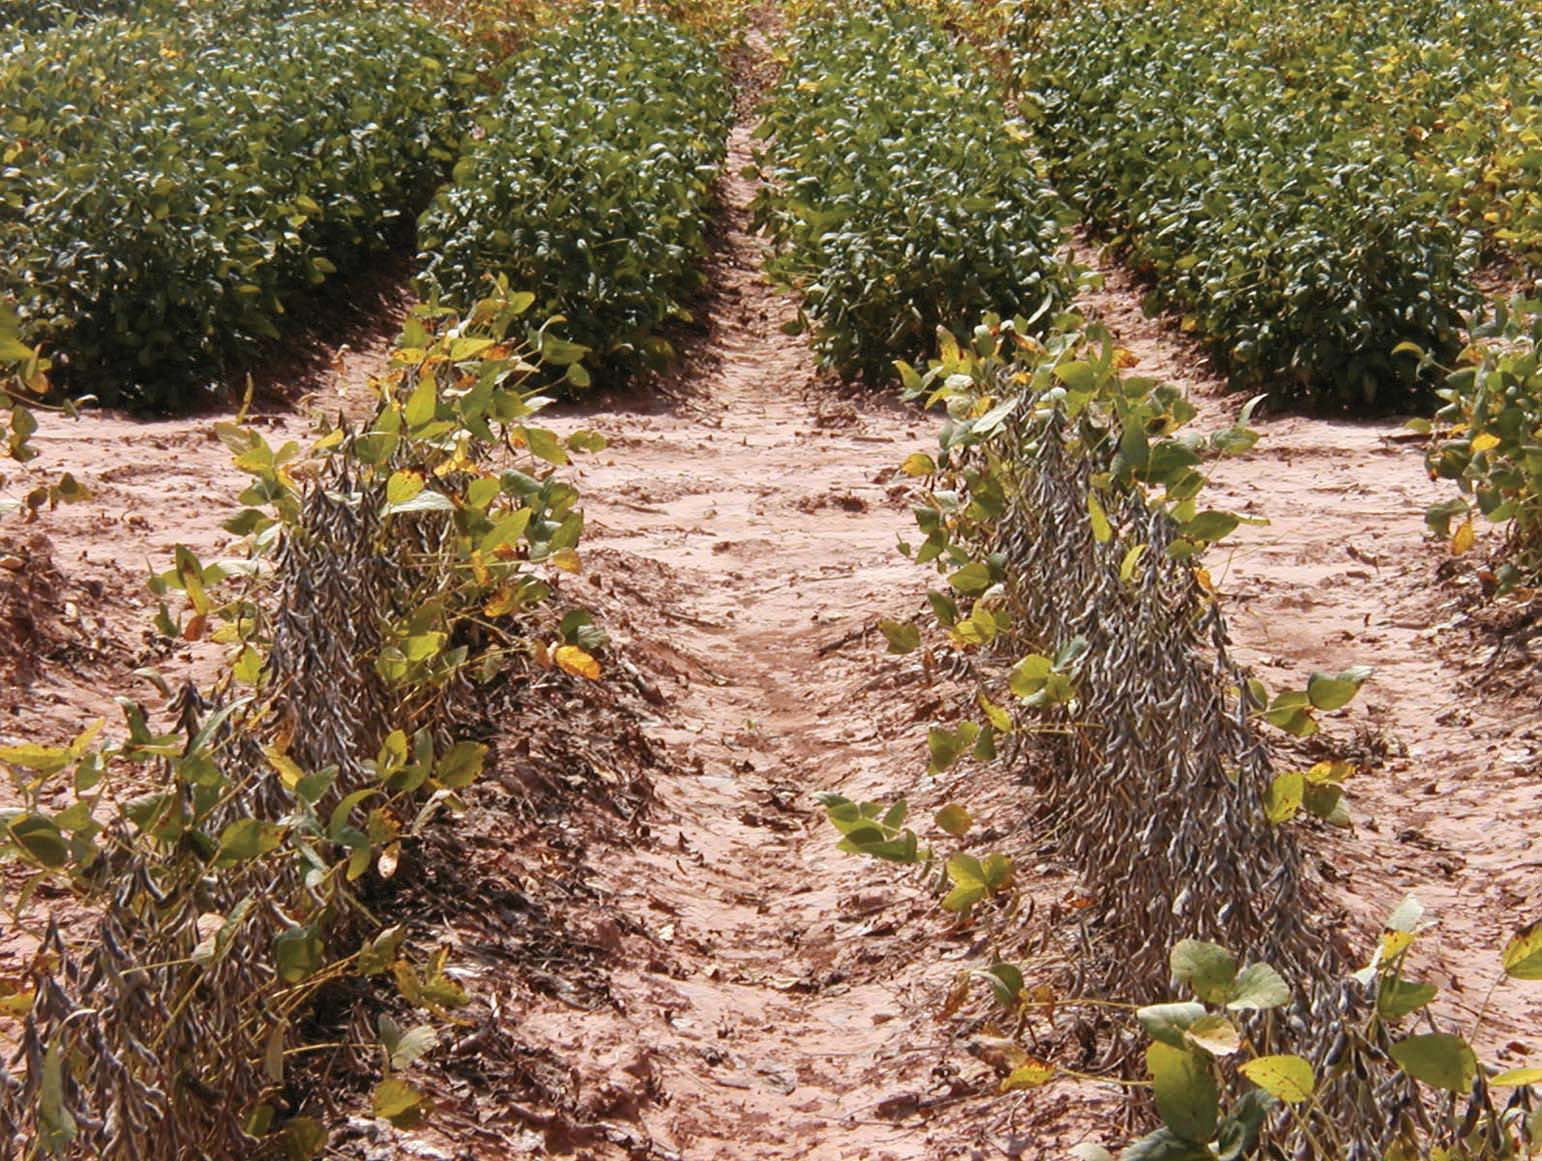 Evaluating very early maturing soybeans in Louisiana